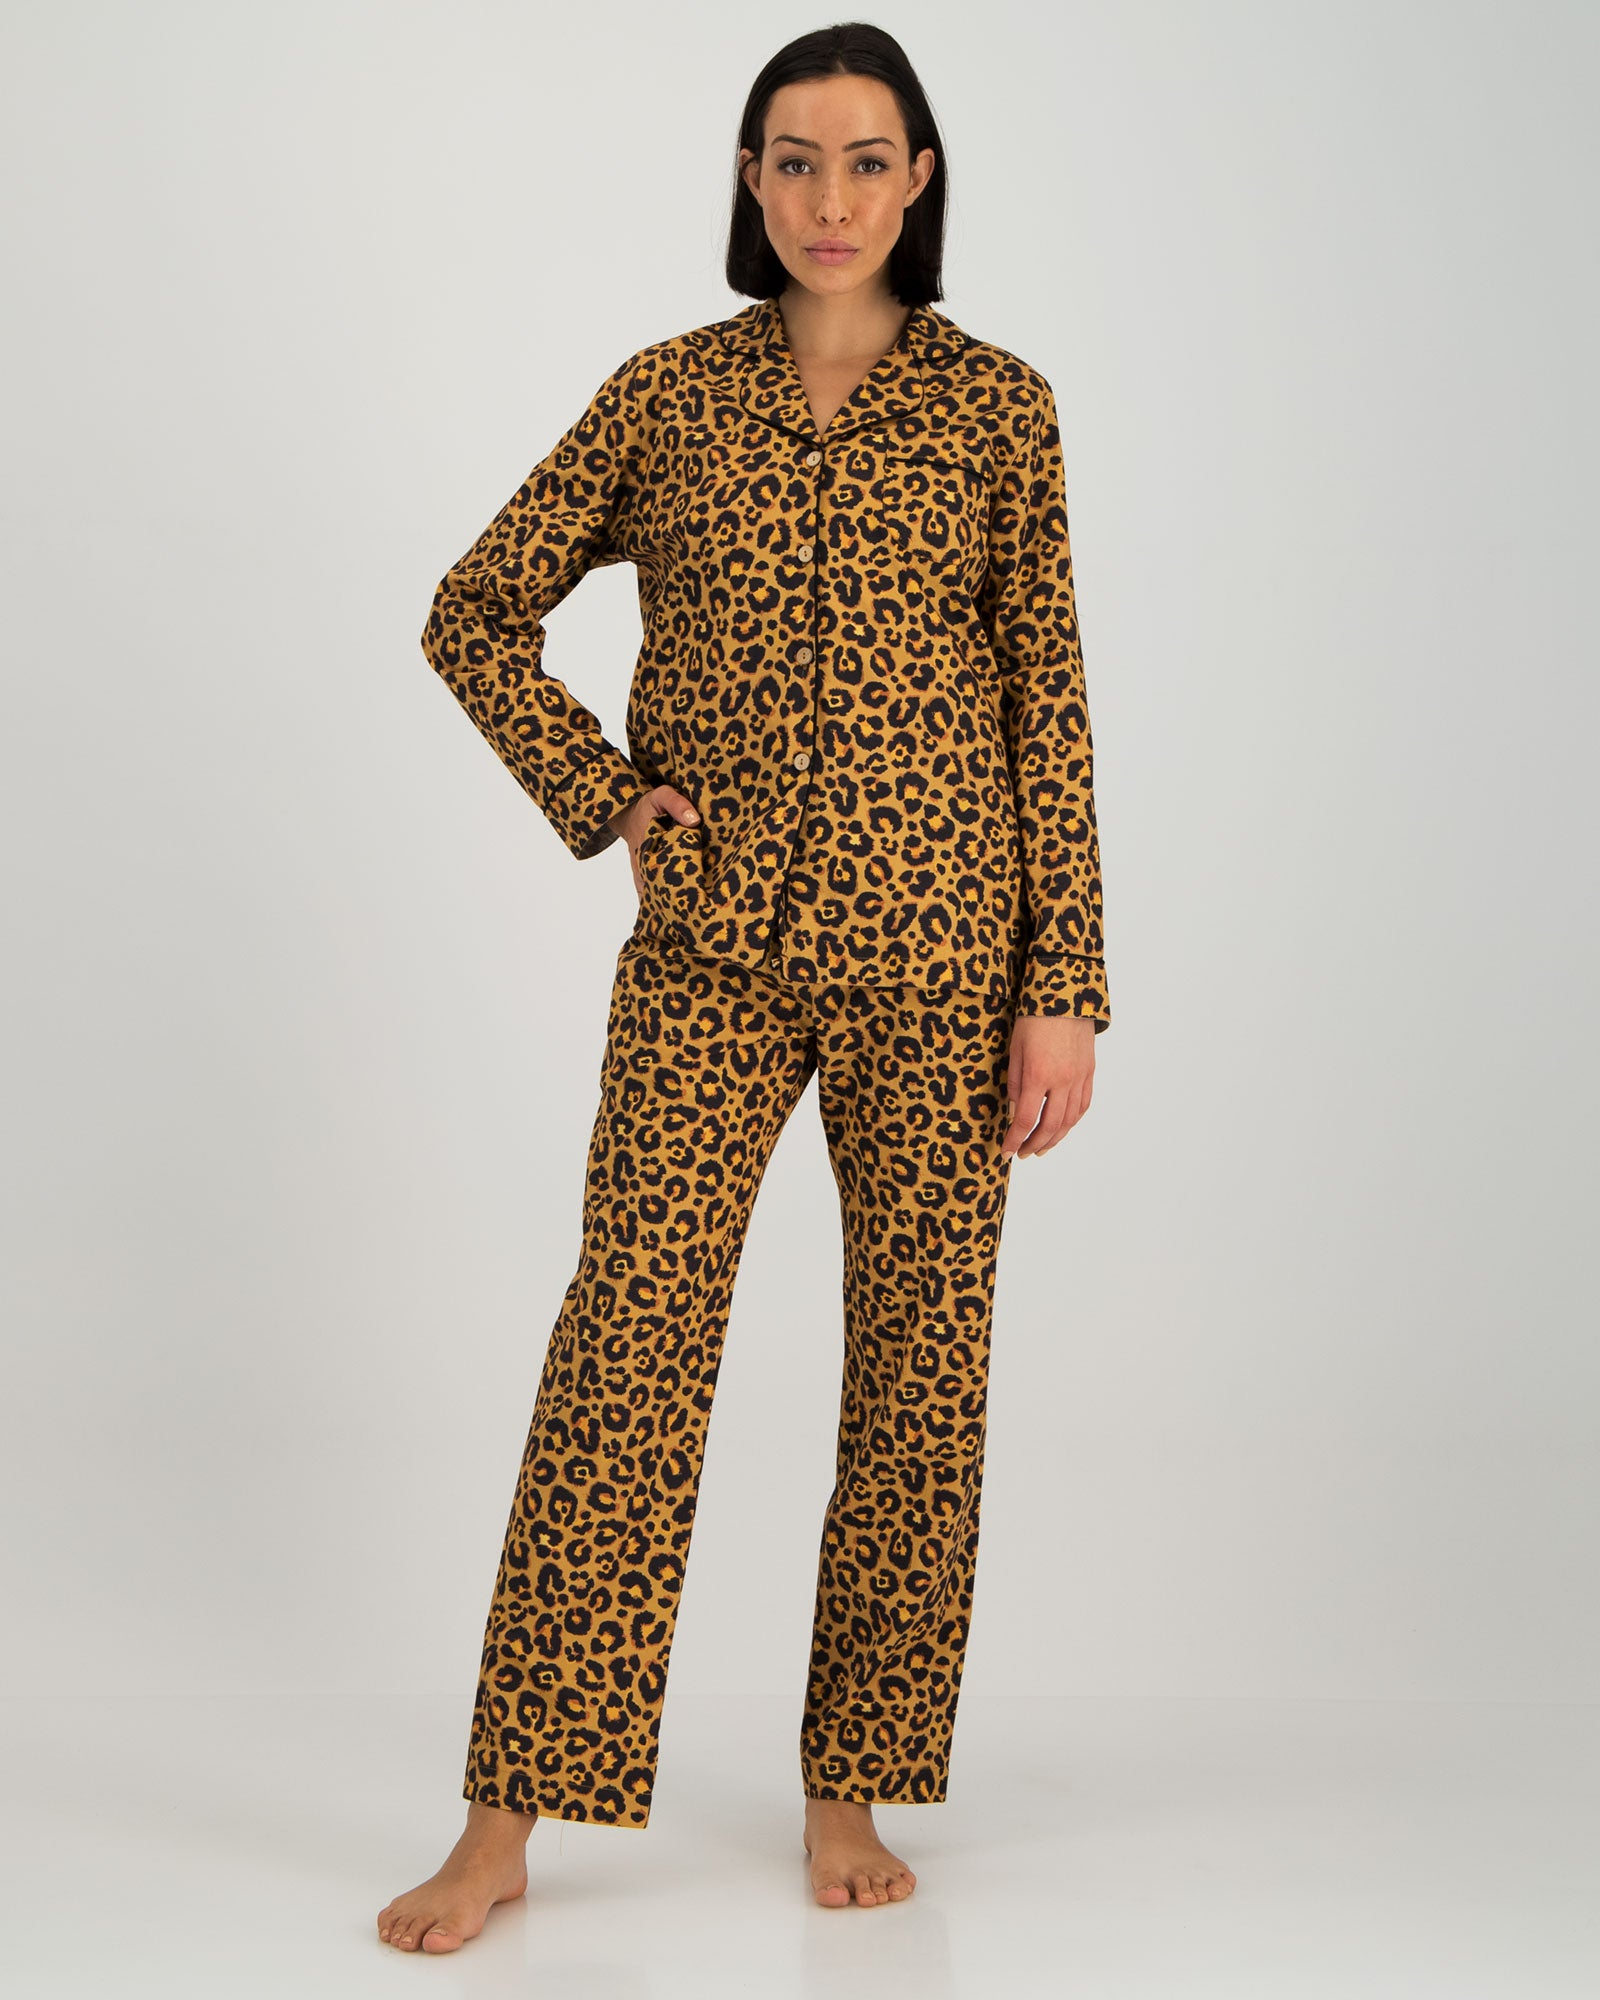 Womens Long Pyjamas - Leopard Skin